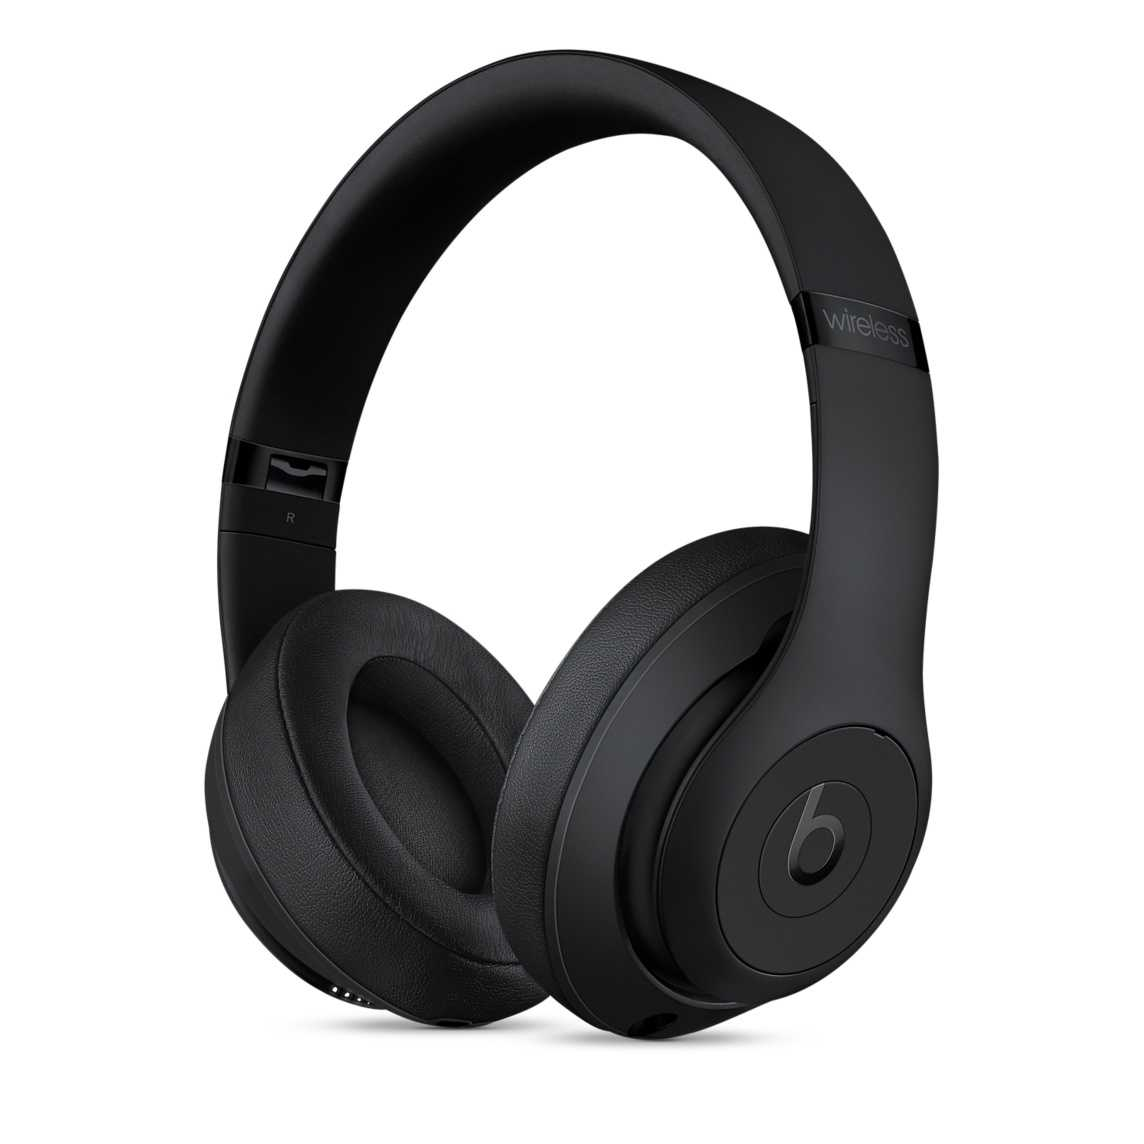 Apple releasing a new Studio3 Wireless headphone with Pure ANC cover image